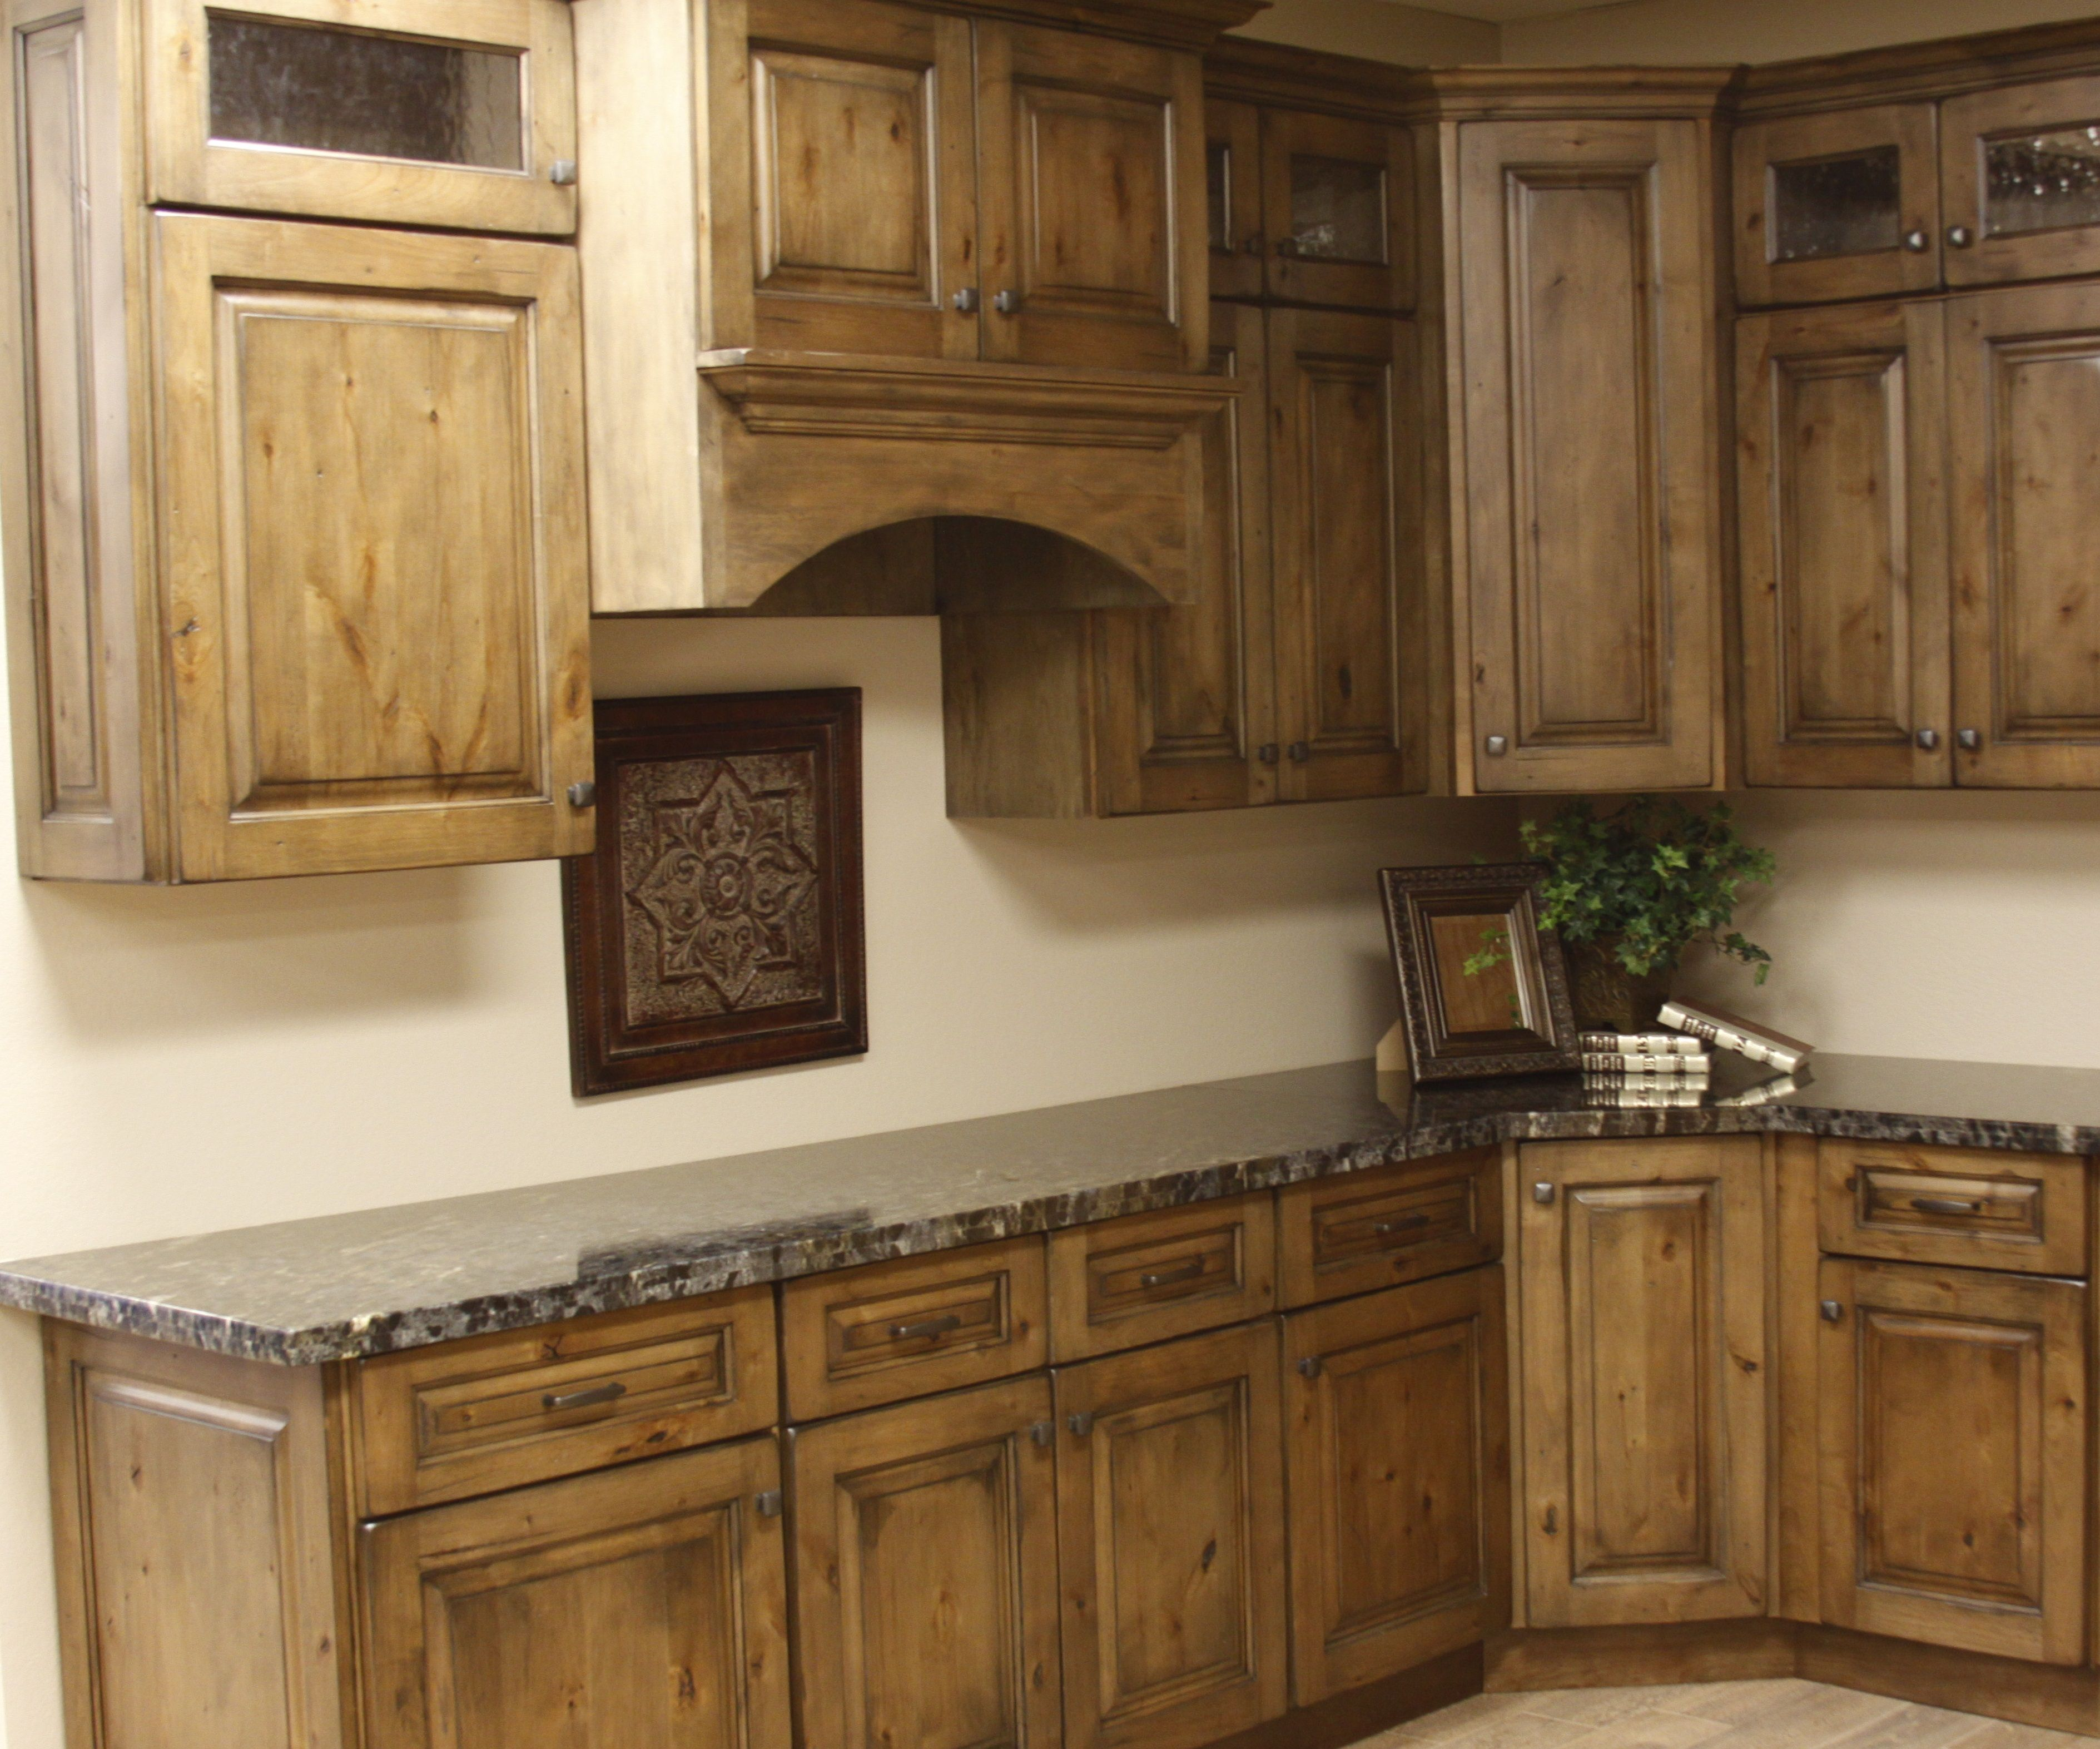 Cheyenne Driftwood Kitchen Cabinets by Sollid Cabinetry ...